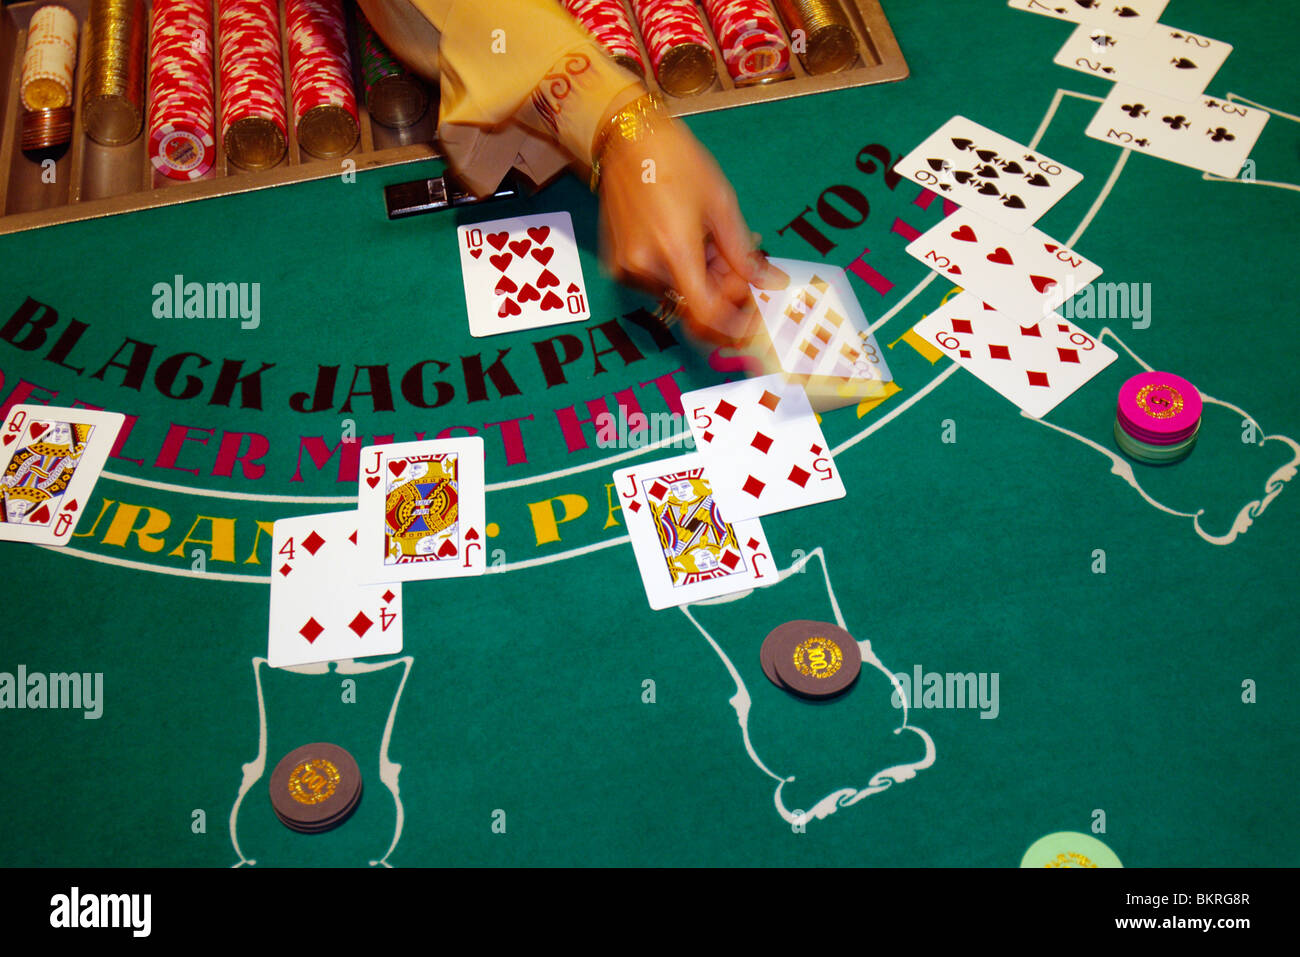 No limit texas holdem reraise rules